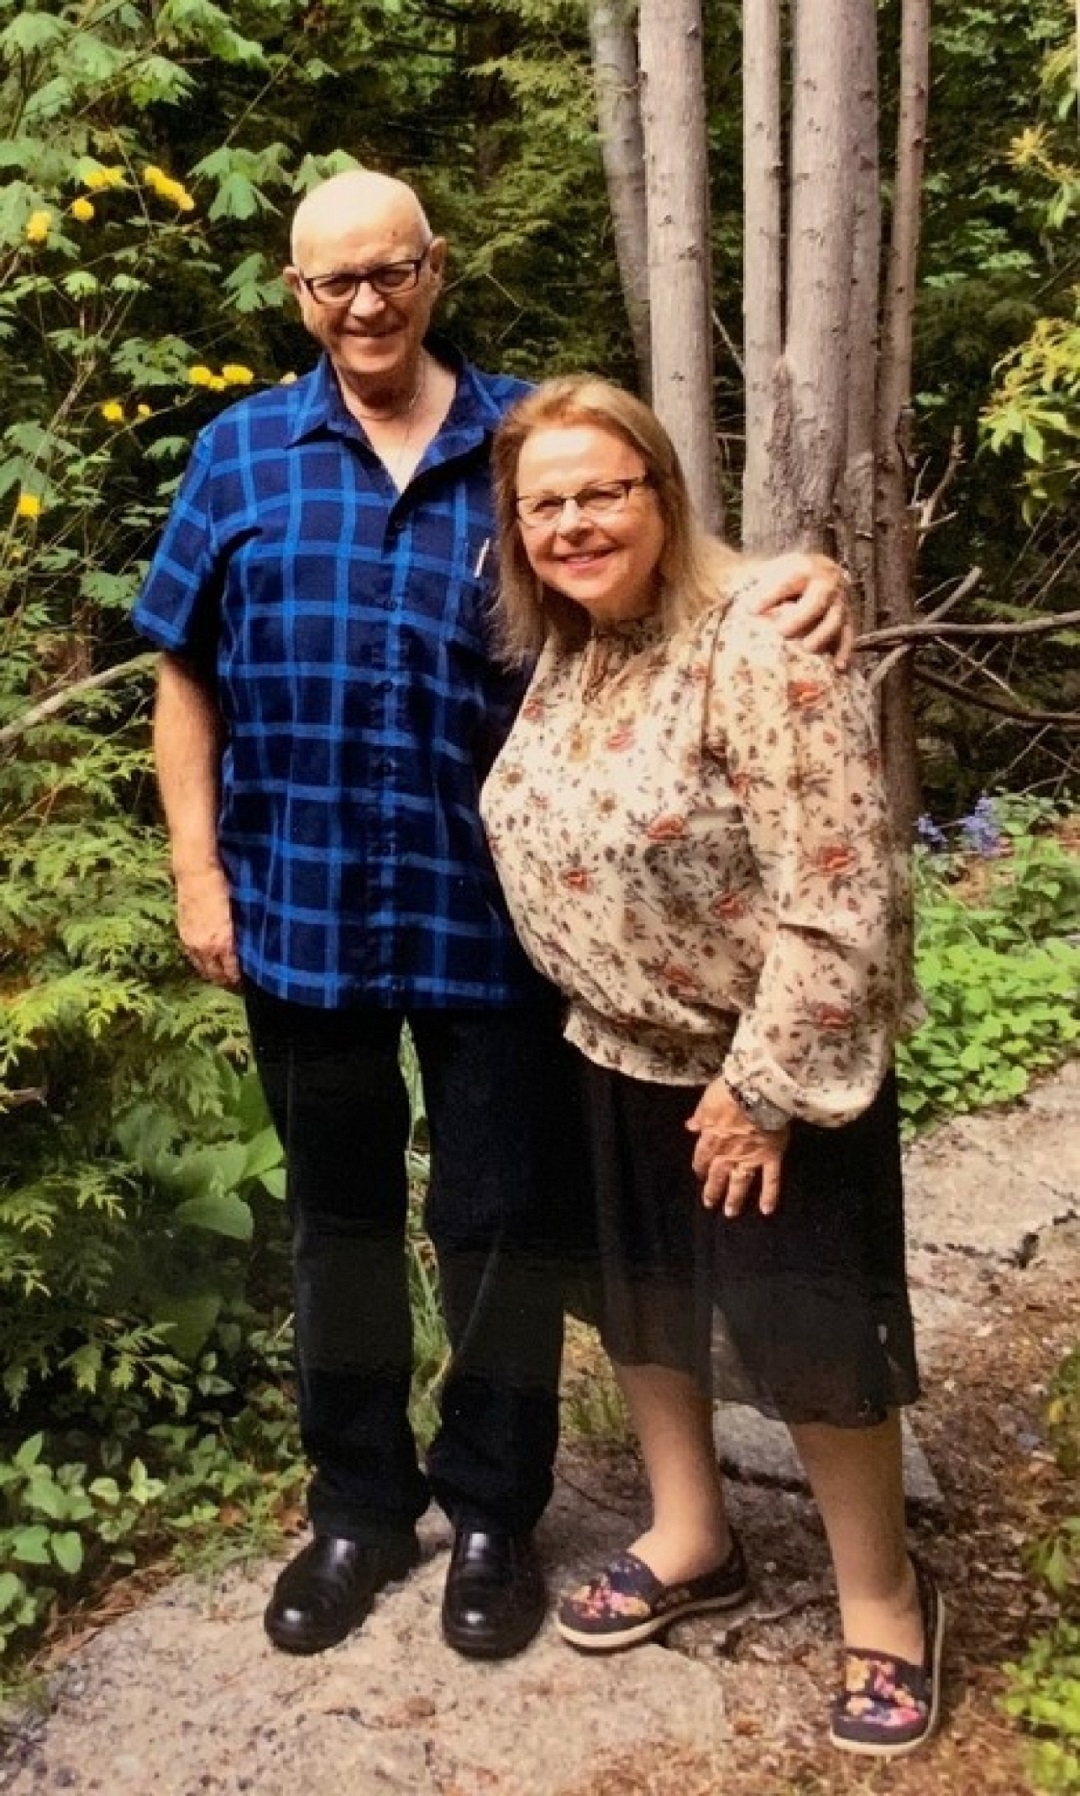 Merrill and Gail Ross had lived in Squamish for more than 50 years and leave behind four children and seven grandchildren.